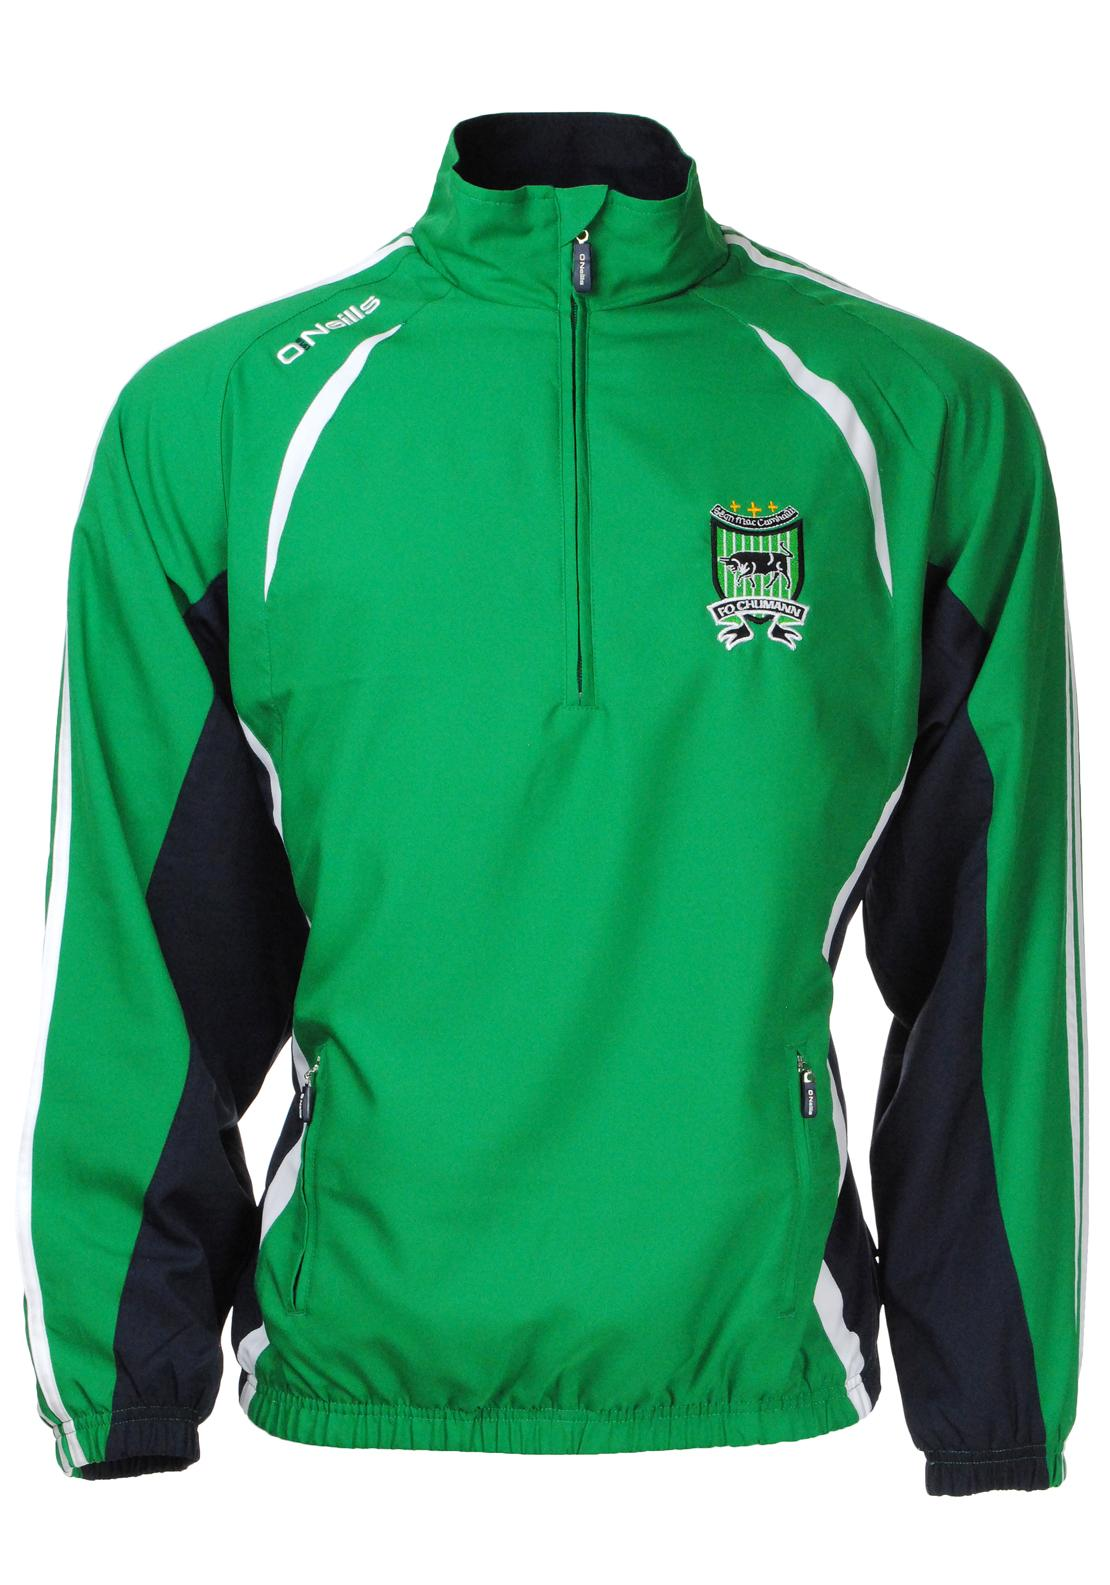 O'Neill's Adults Mac Cumhaills Ria Track Top, Green